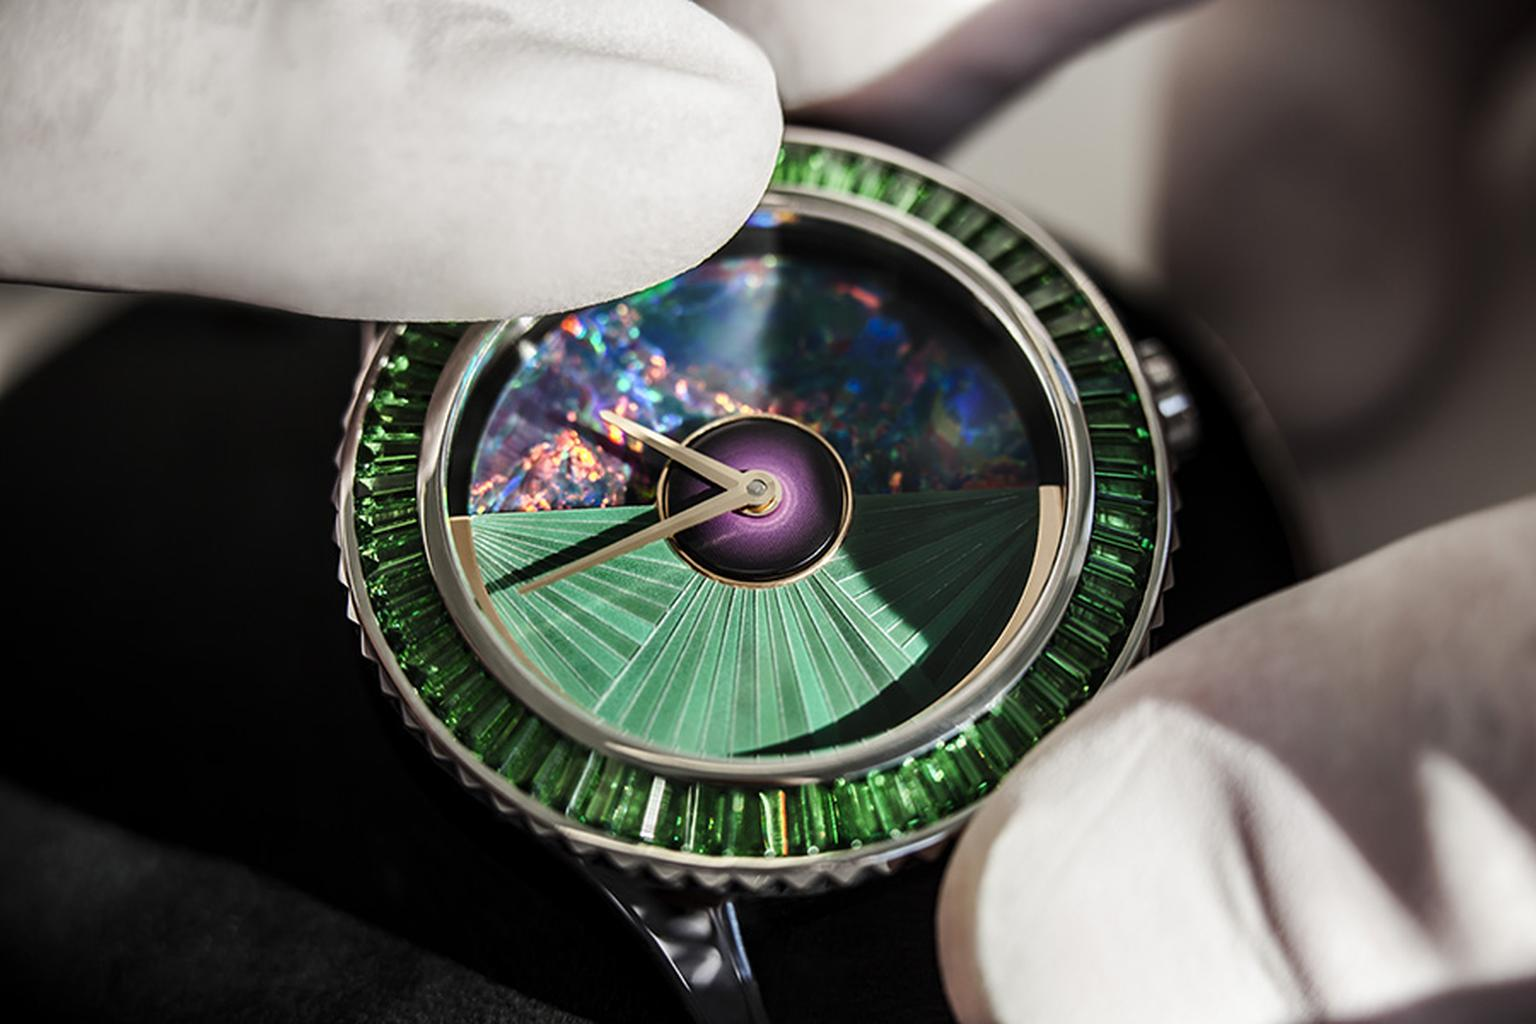 DiorVIII-Positioning-of-the-bezel